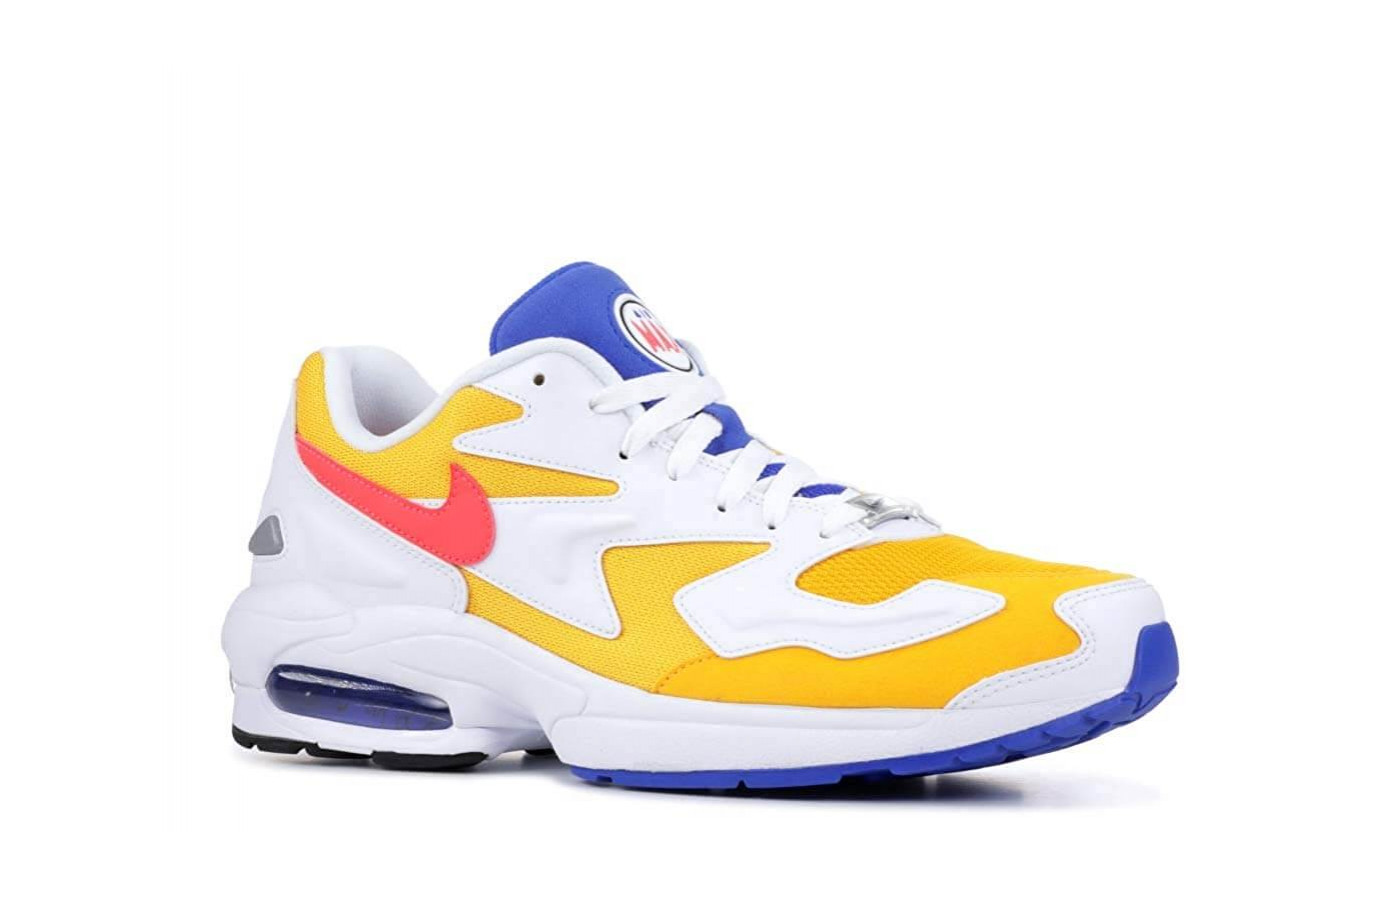 The Air Max2 Light is available in several vibrant color schemes